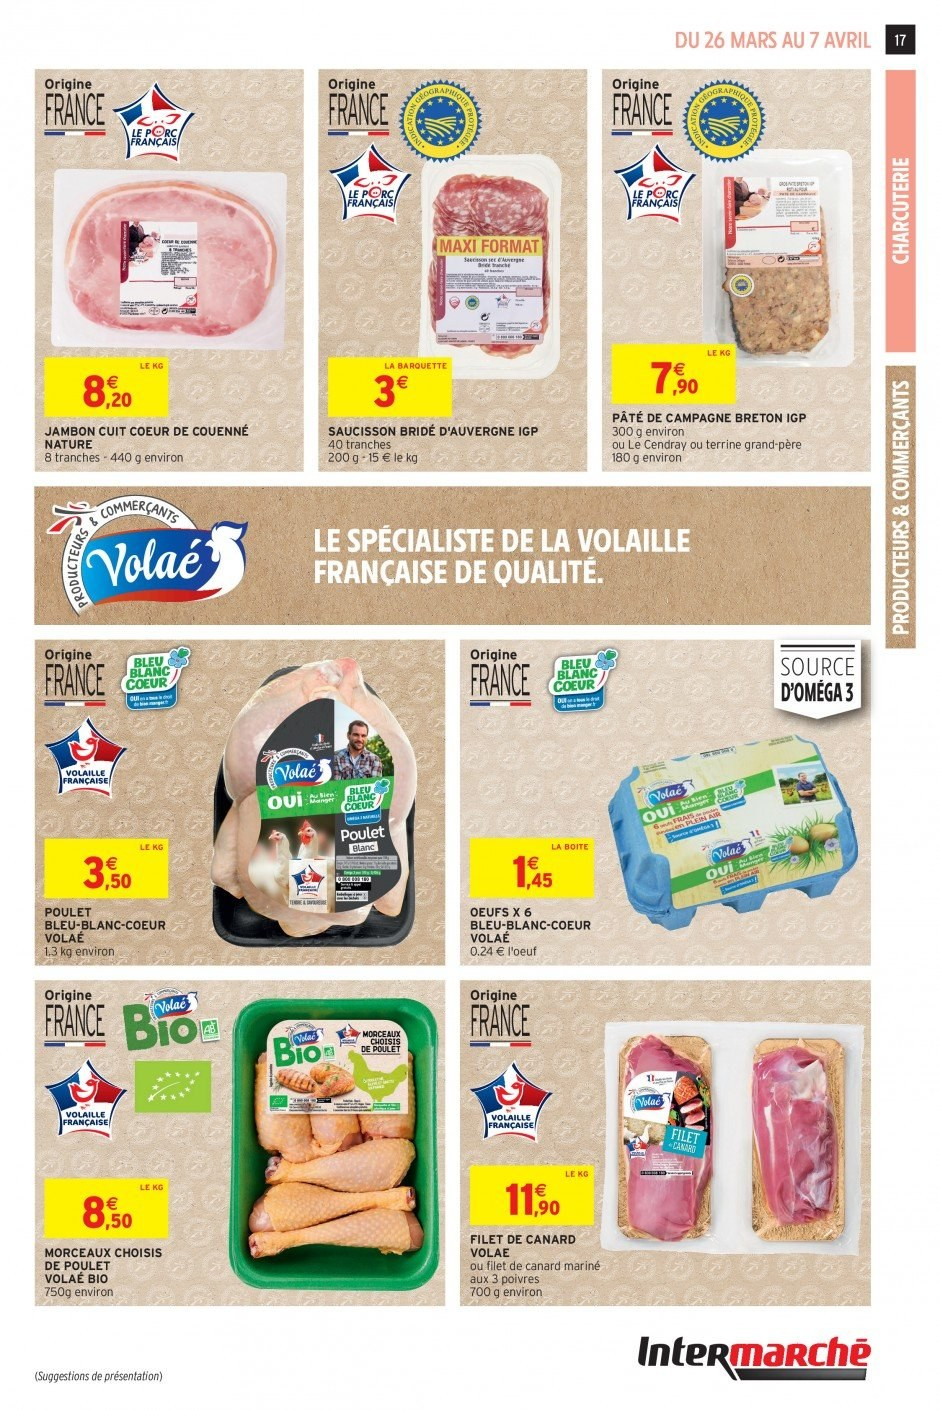 Catalogue Intermarché - 26.03.2019 - 07.04.2019. Page 16.